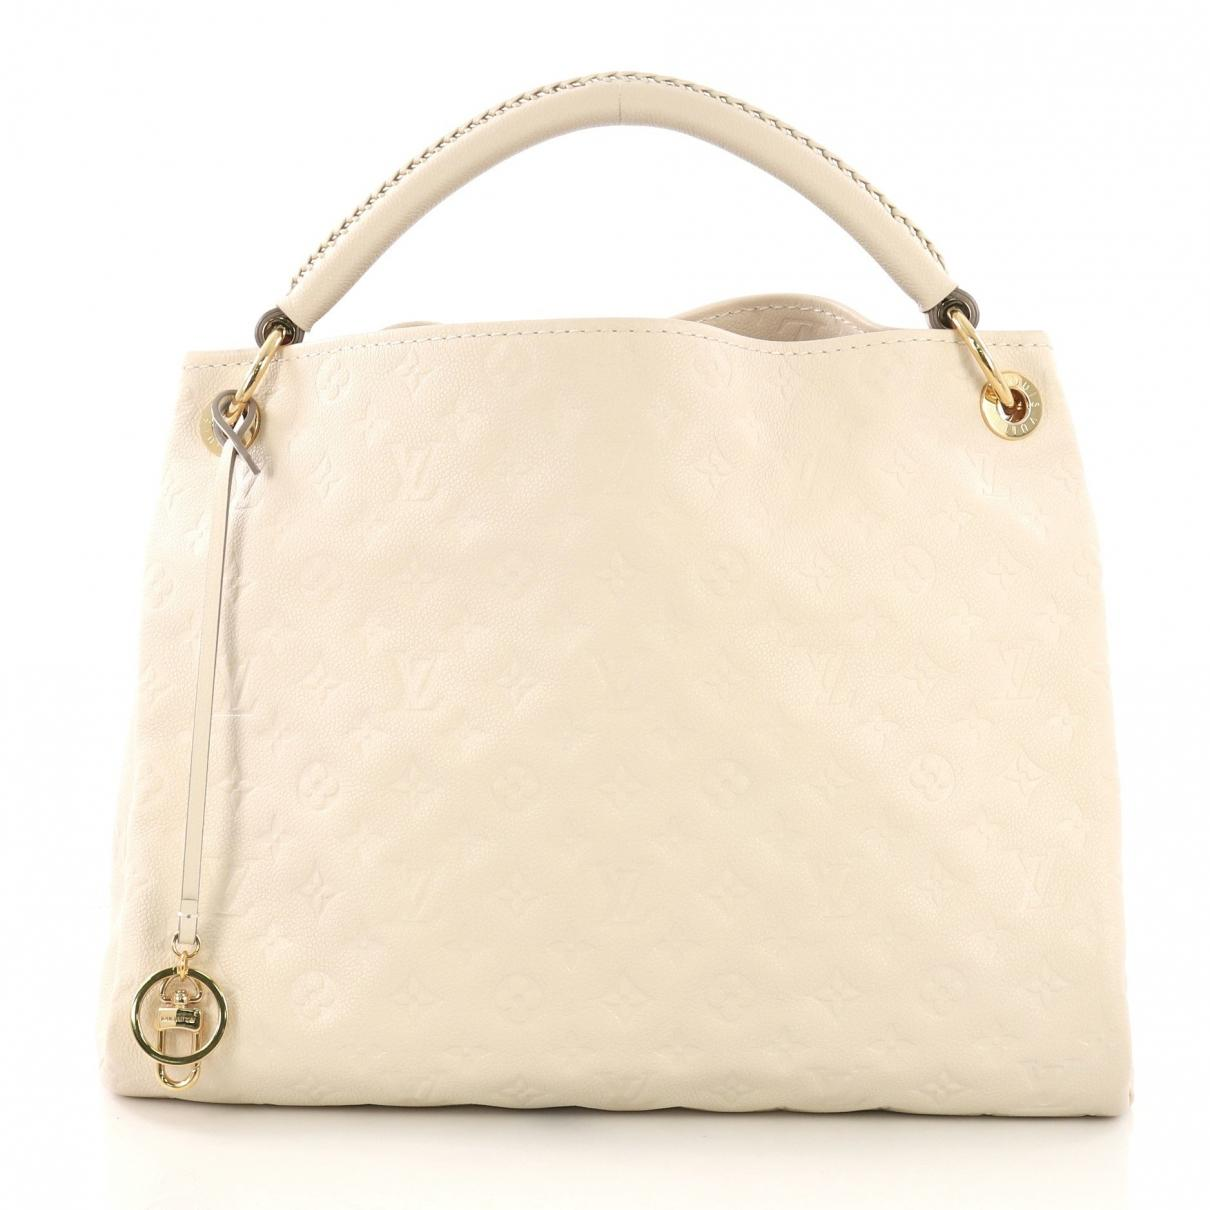 27a3640bc90b Louis Vuitton Pre-owned Artsy White Leather Handbags in White - Lyst